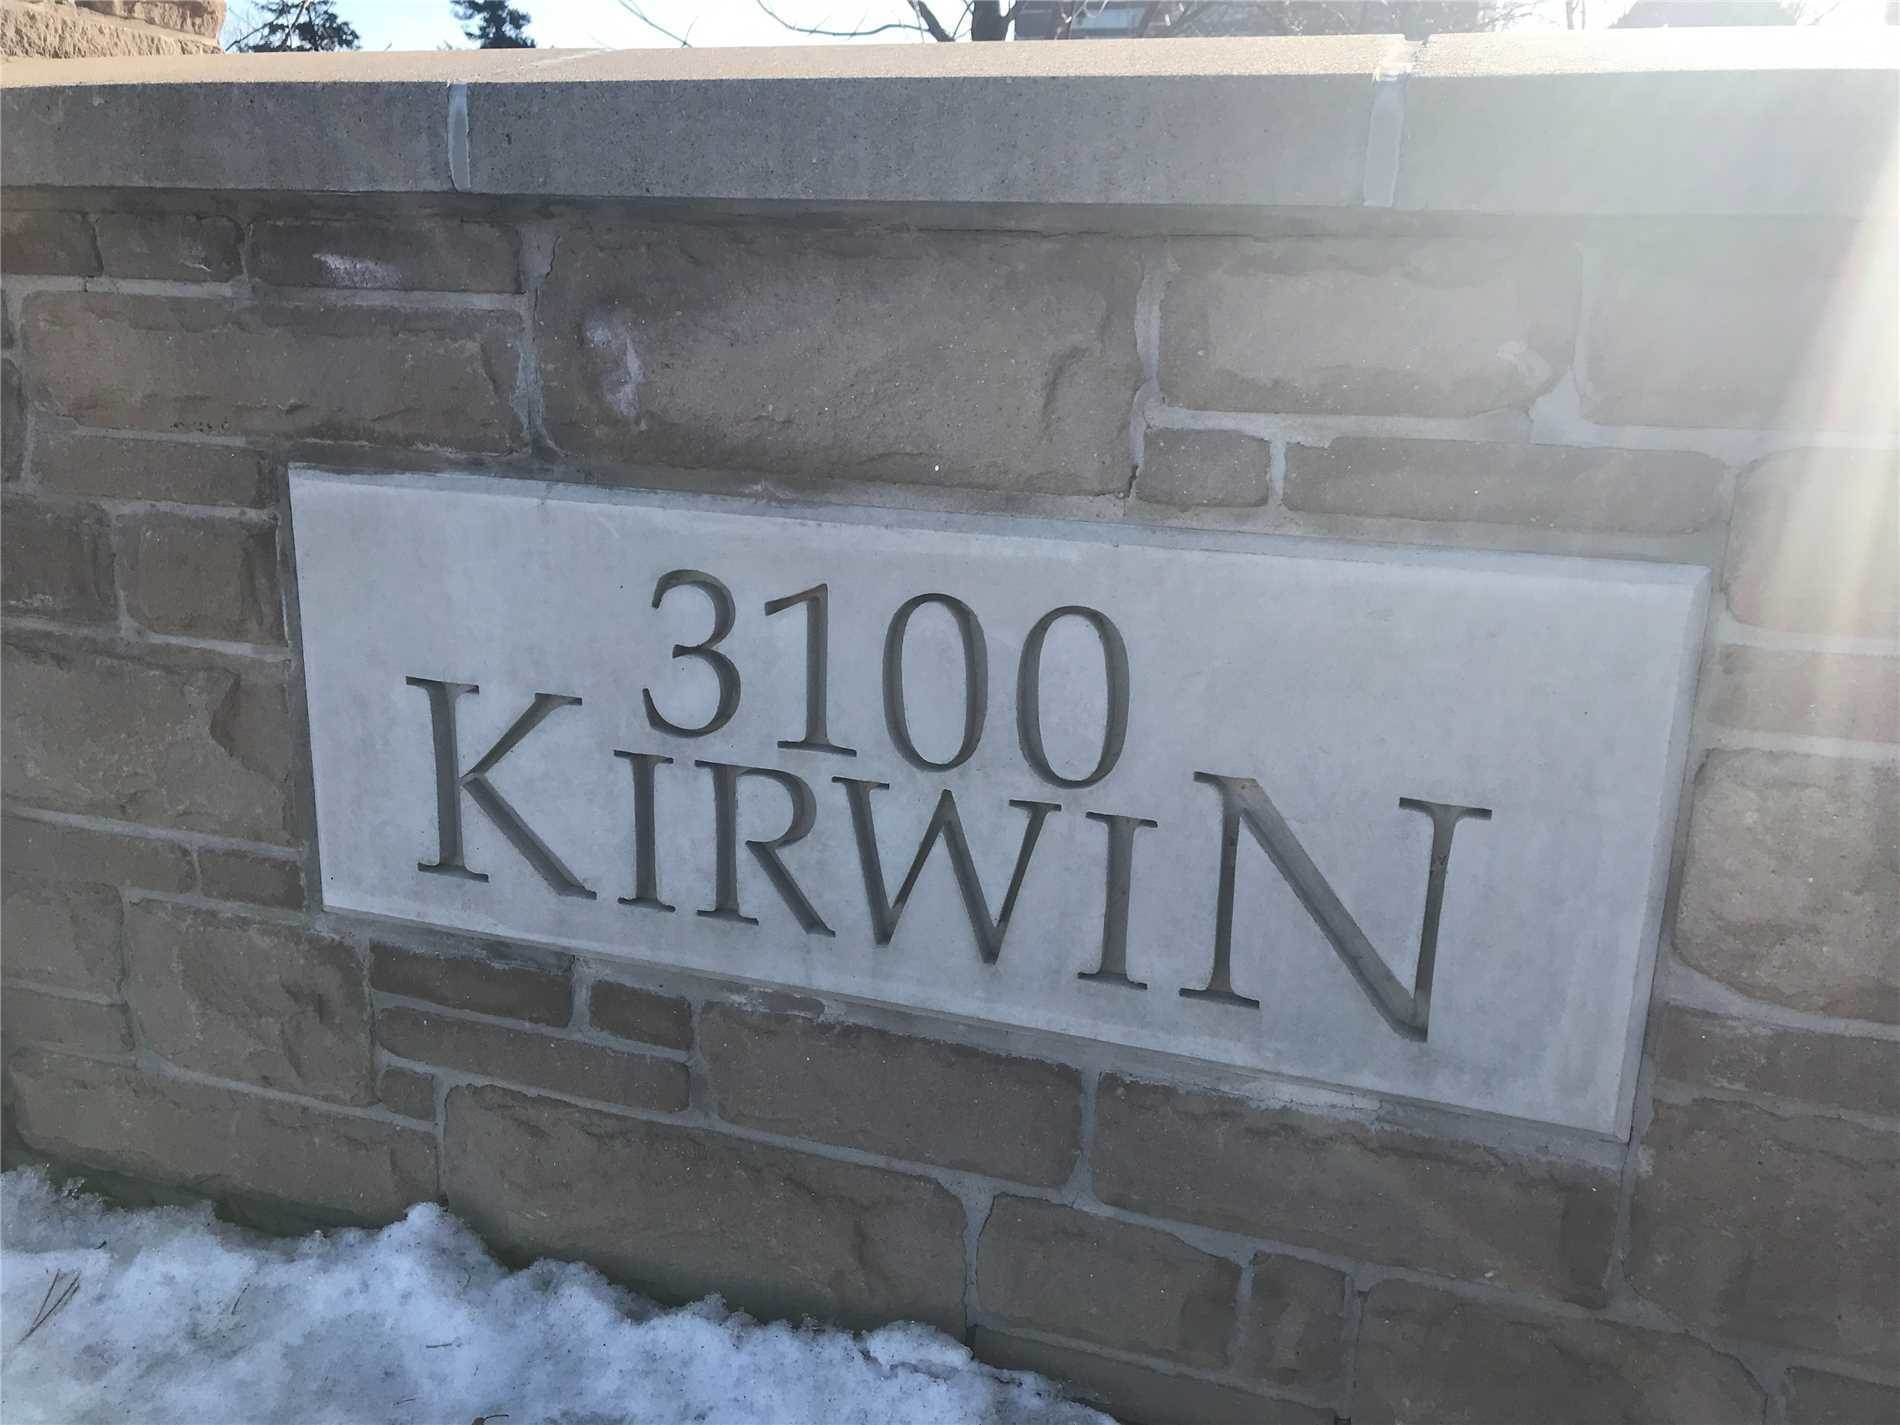 3100 Kirwin Ave, Mississauga, Ontario, L5A3S6